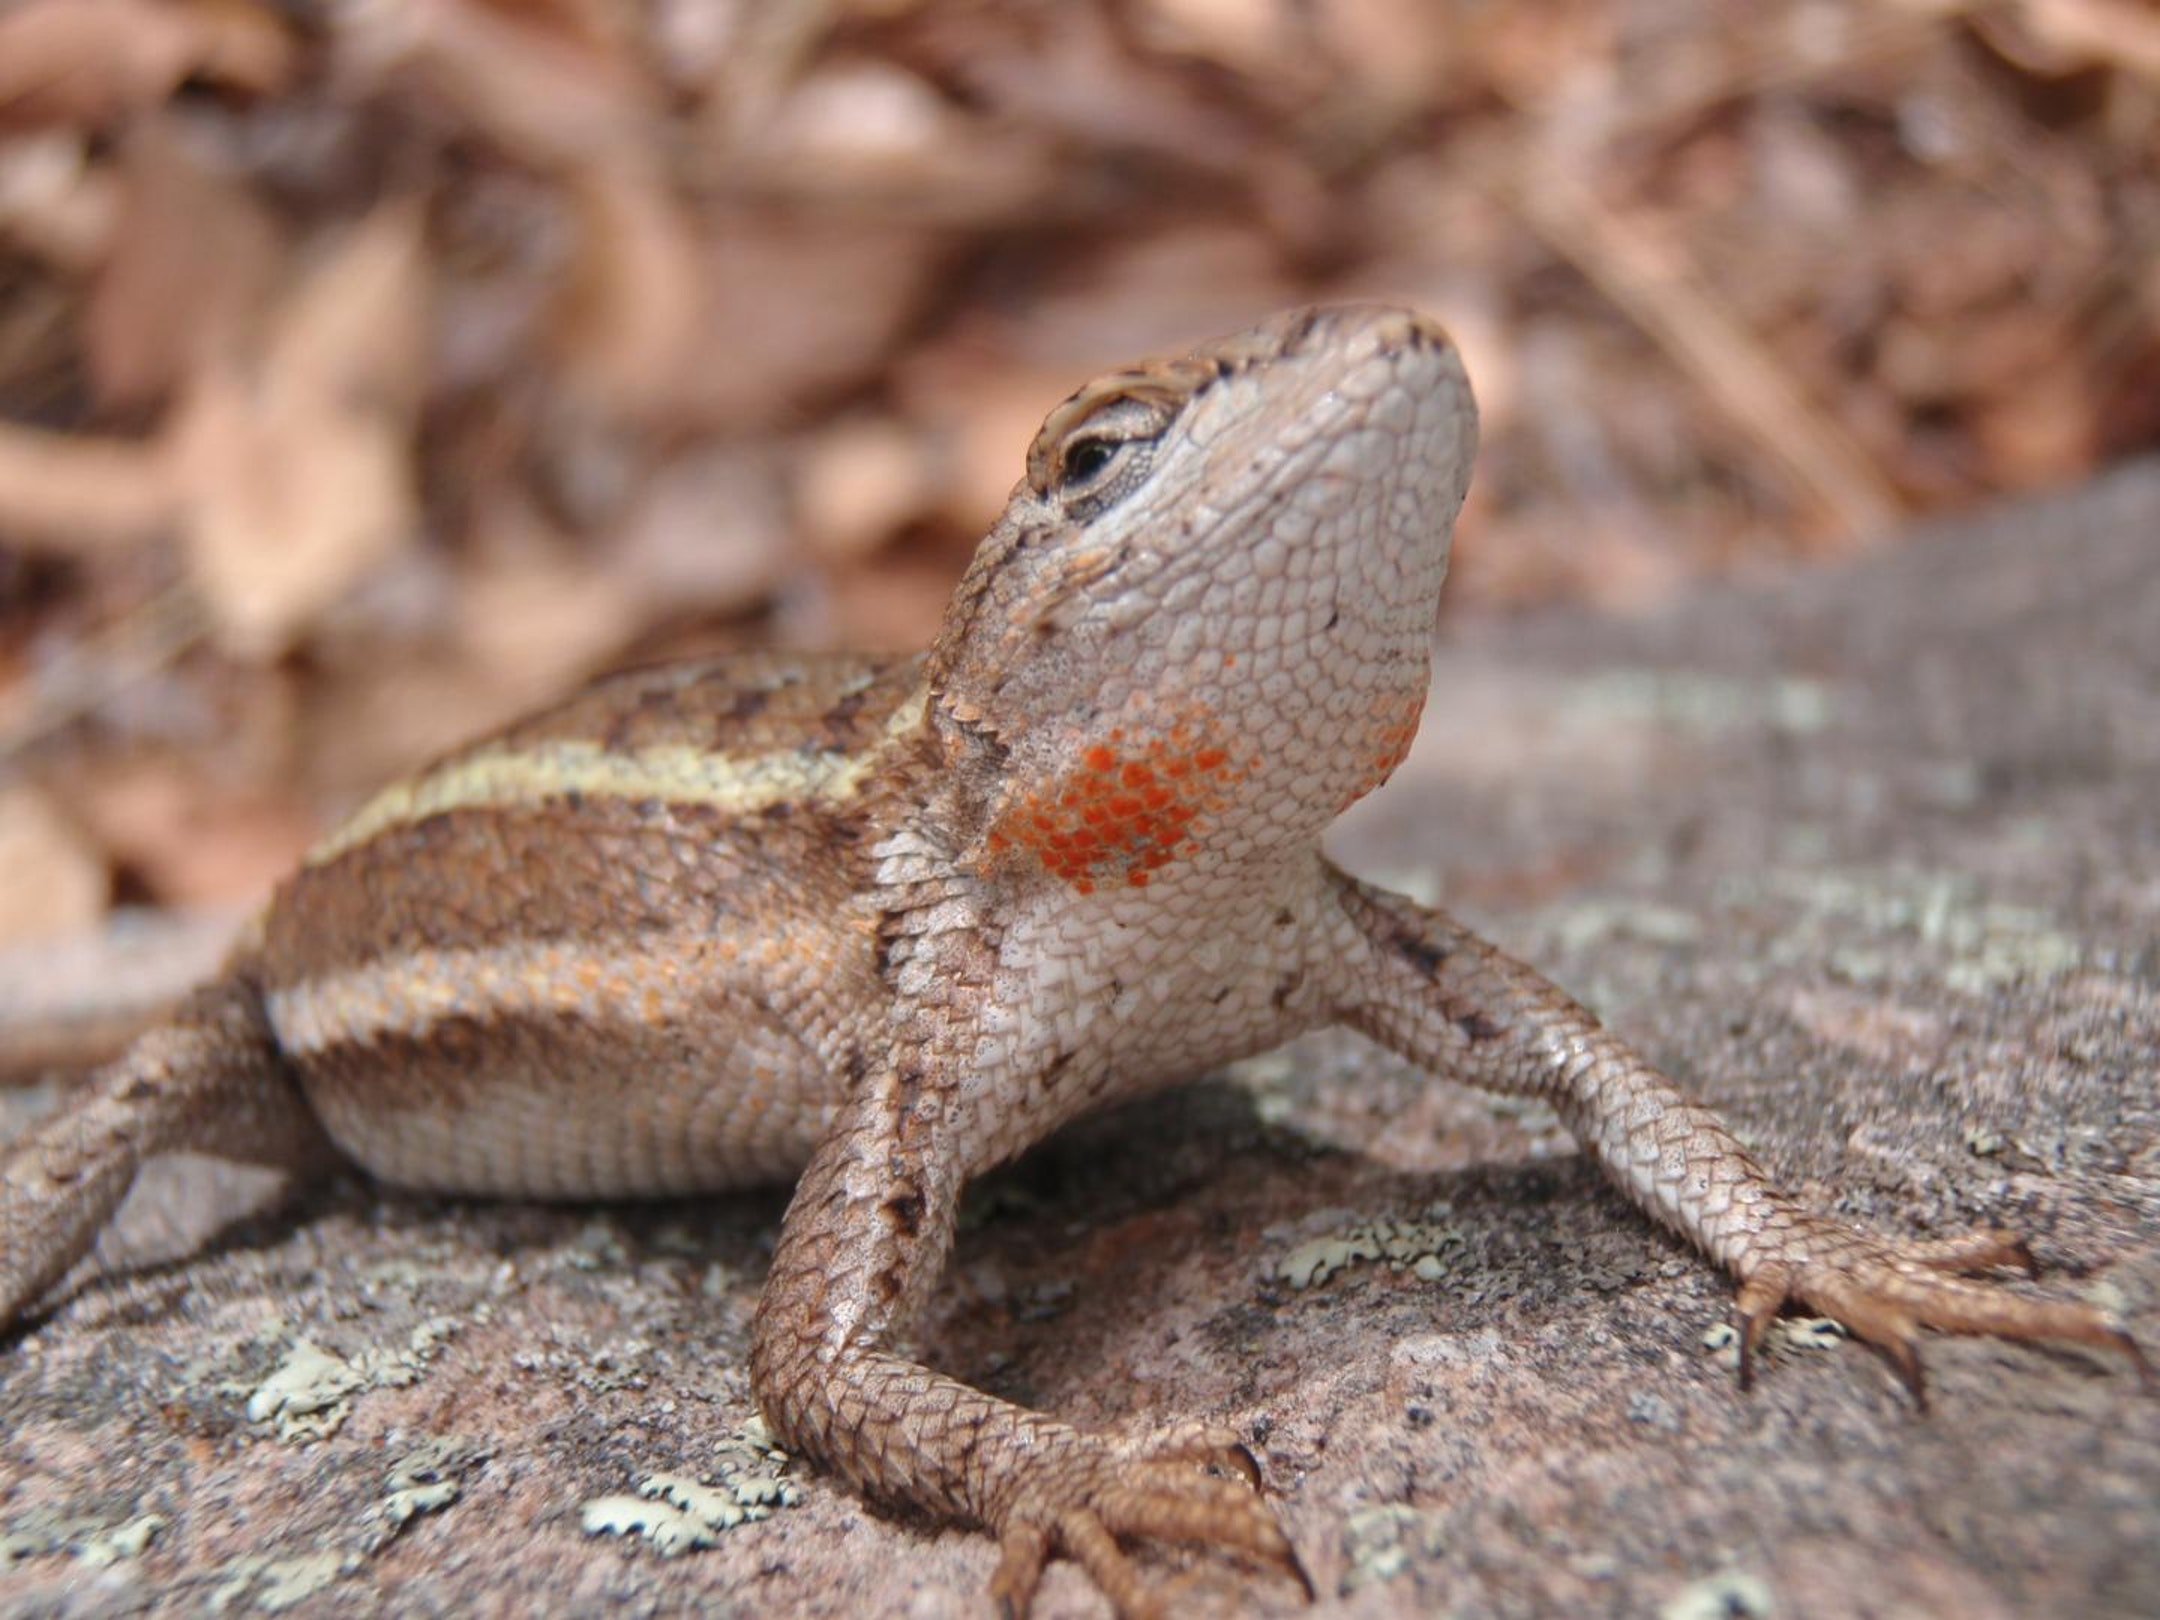 Female striped plateau lizards from Arizona develop orange patches on their throats when they are ready to mate. Males prefer females with darker orange spots, a signal that they have higher-quality eggs.